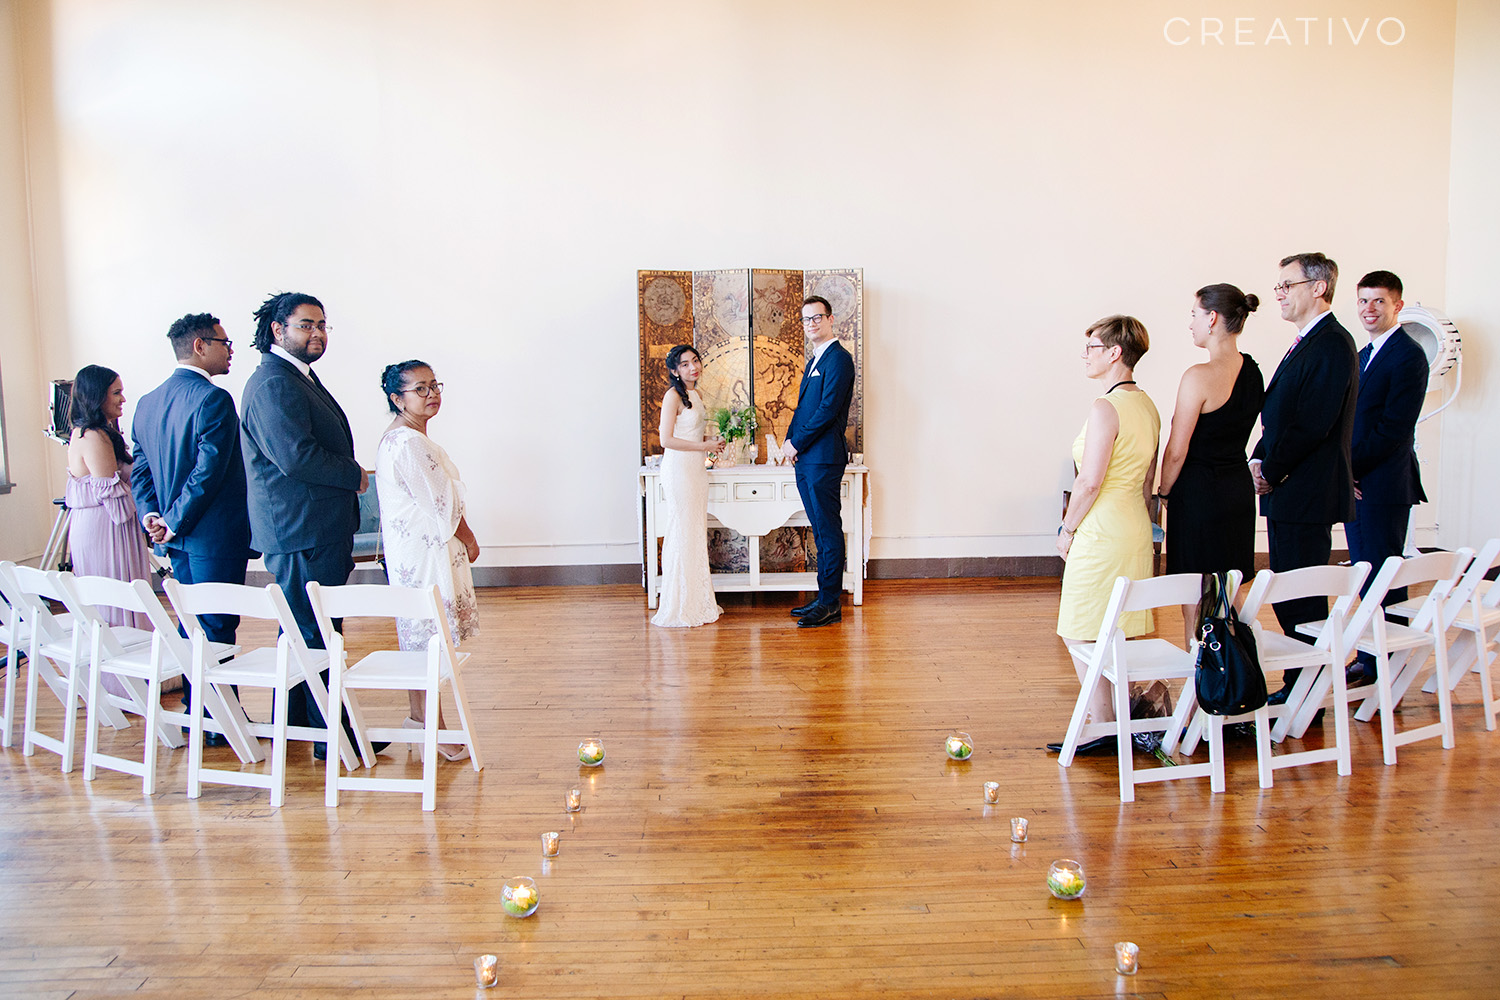 13. Destination elopement to Chicago with your family, with travel decor and theme